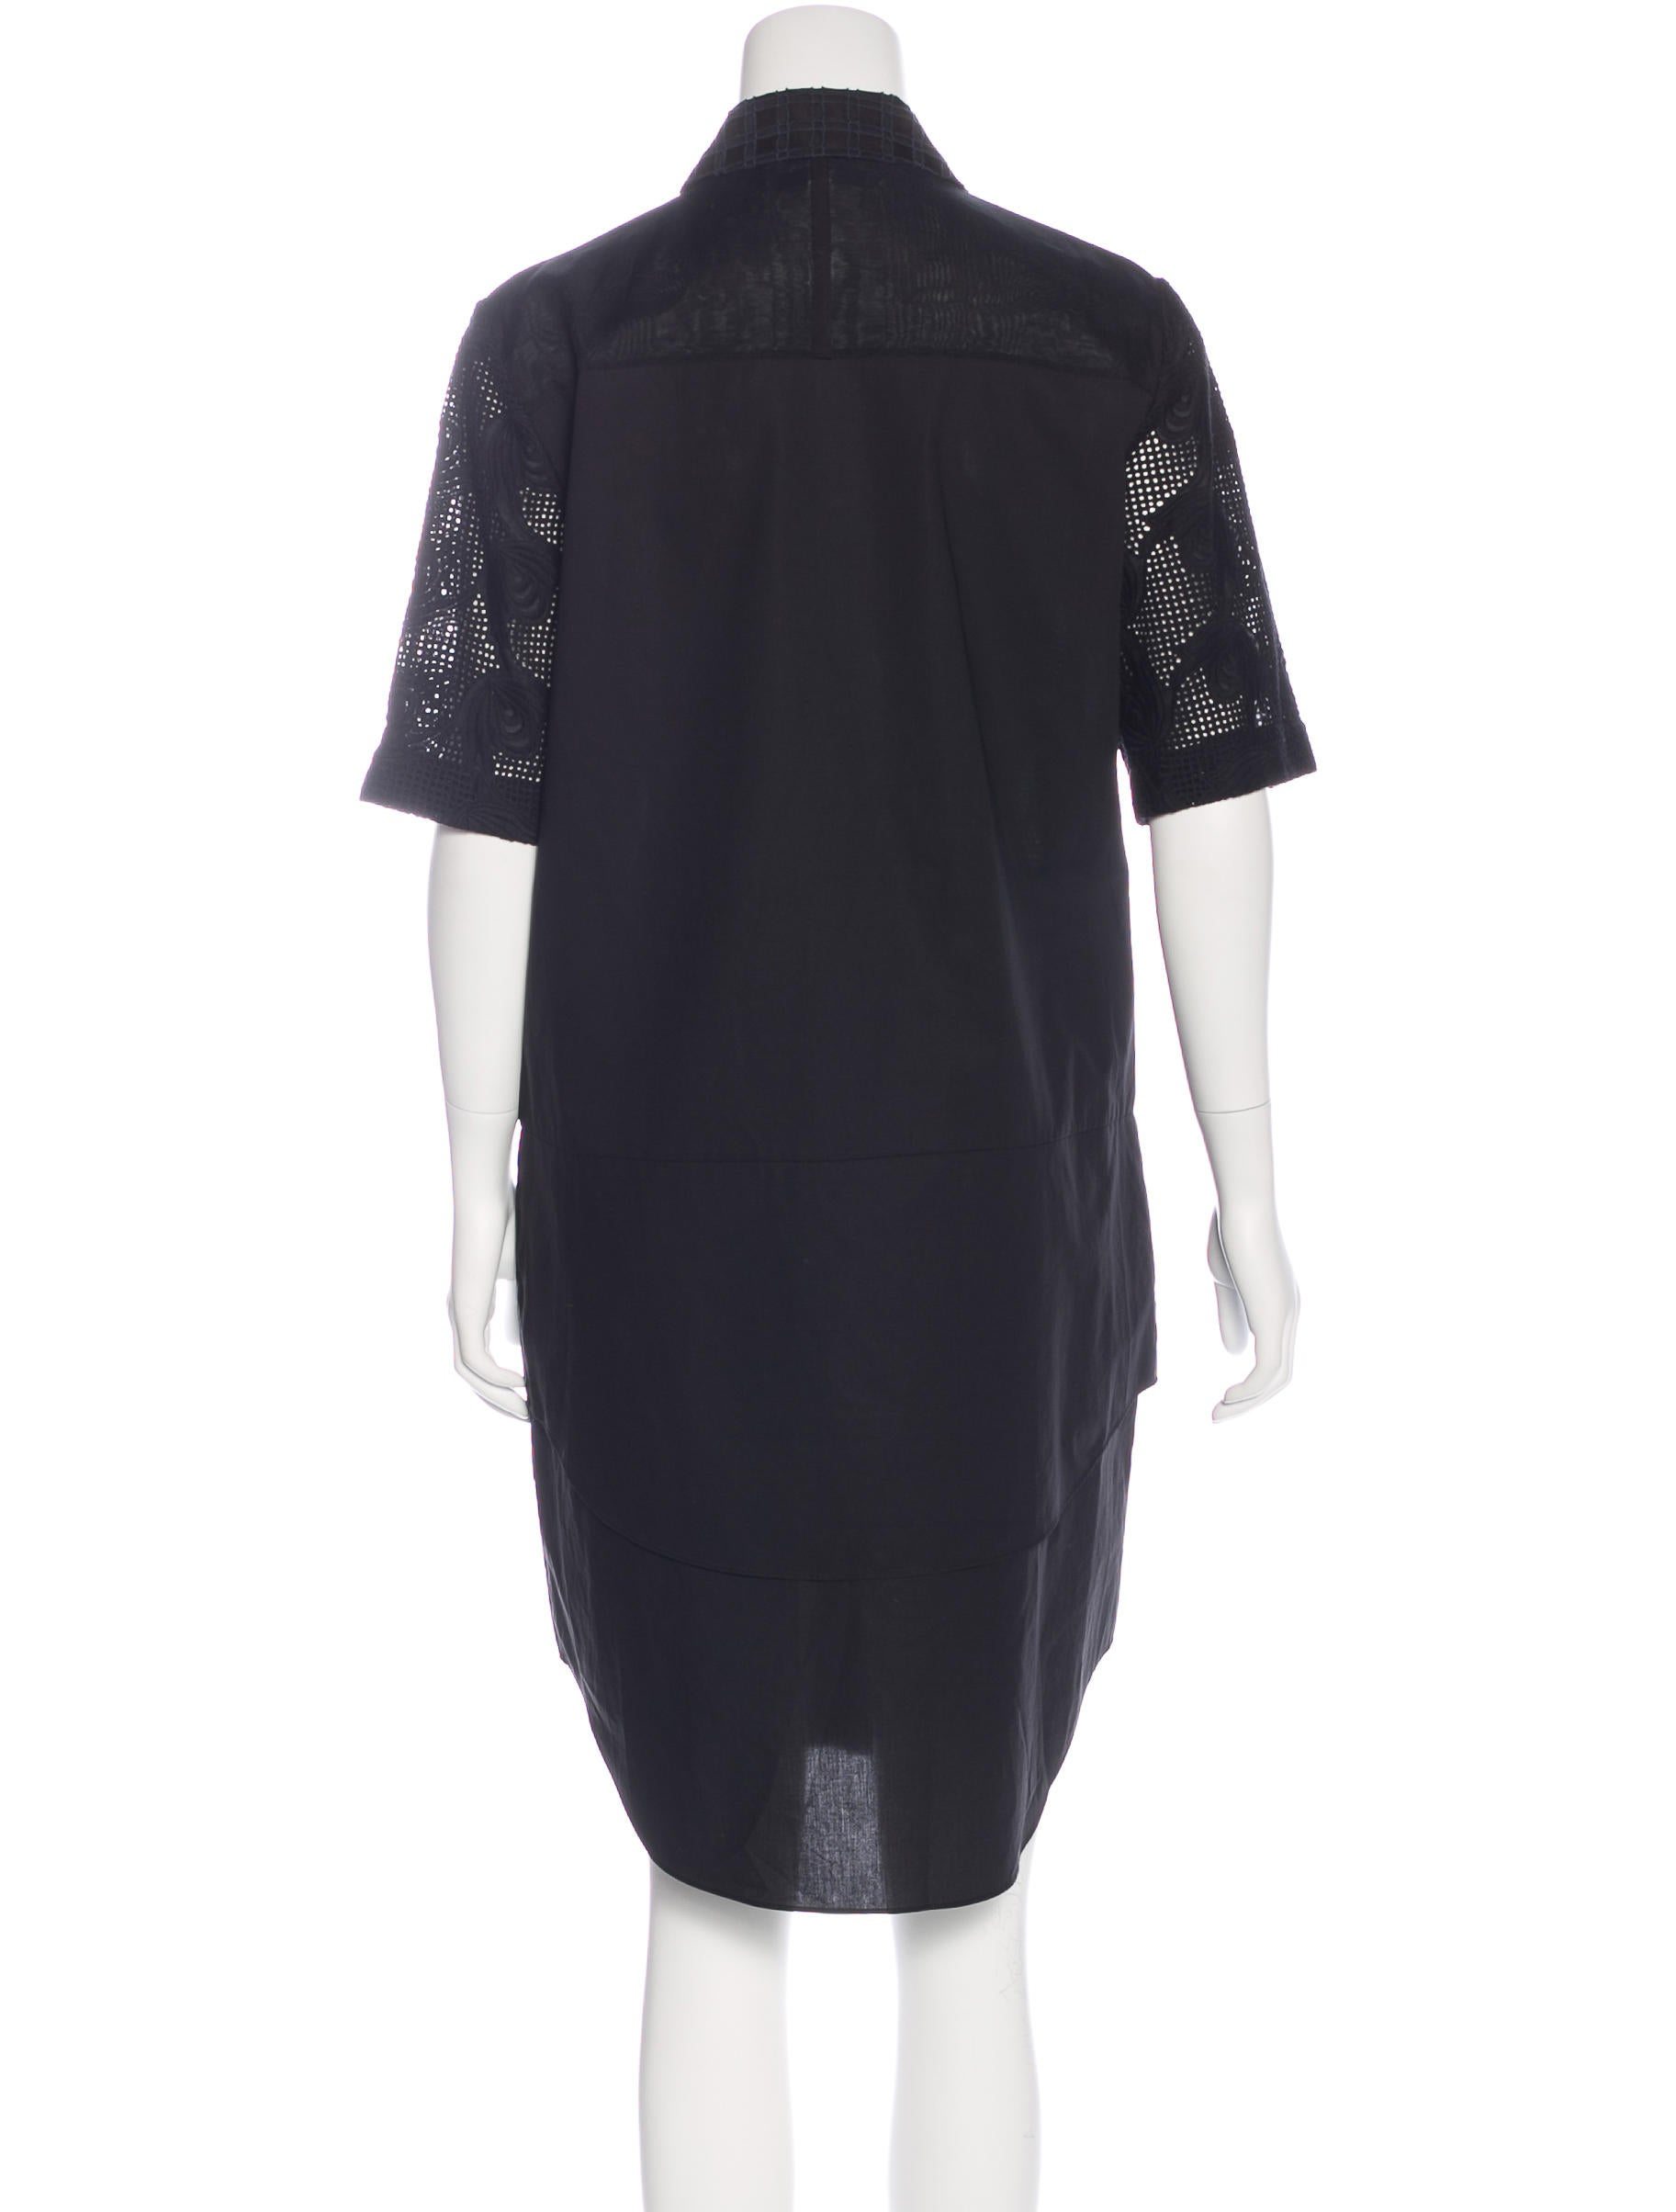 Derek lam 10 crosby embroidered t shirt dress clothing for Derek lam 10 crosby shirt dress